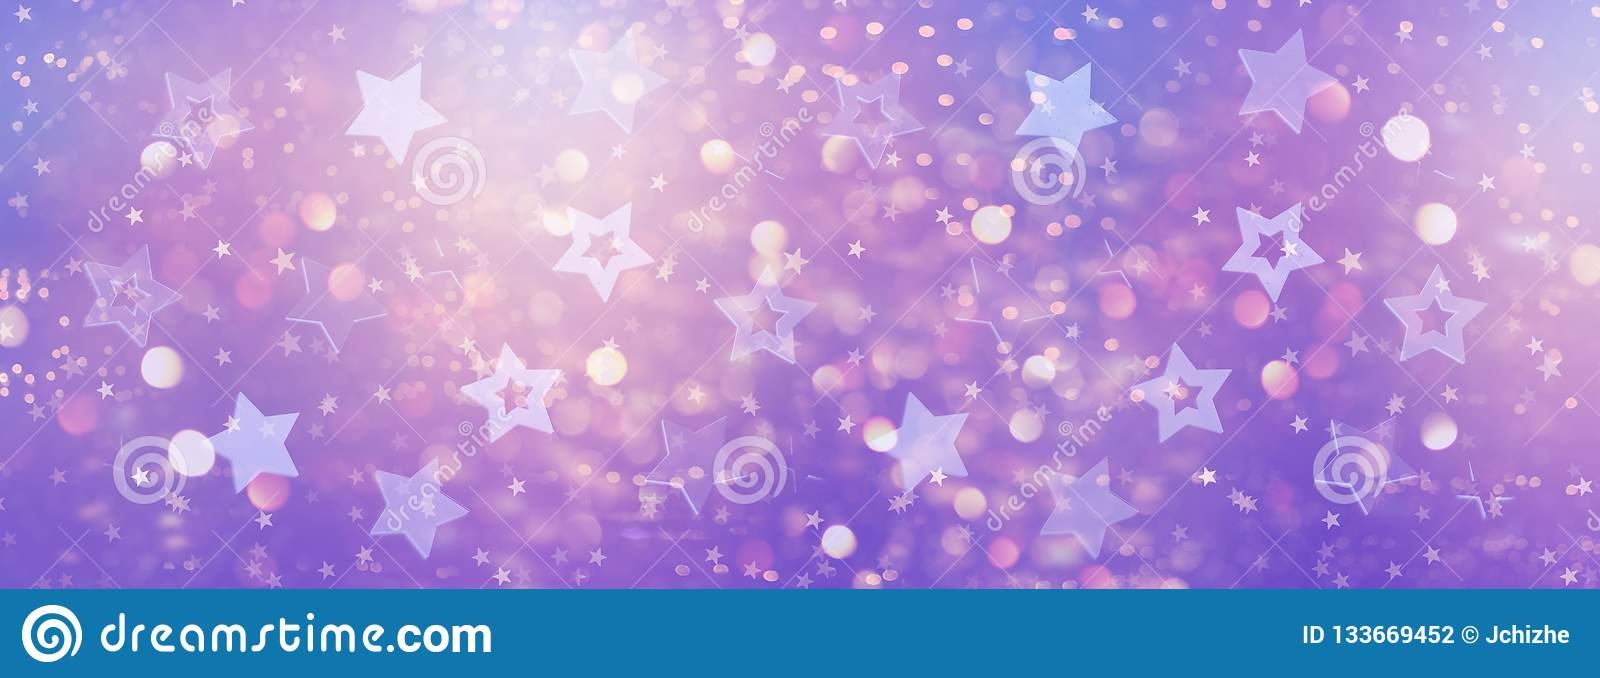 Violet, purple stars on gold background with bokeh. Texture for new year, birthday, baby shower party. Creative pattern. Banner